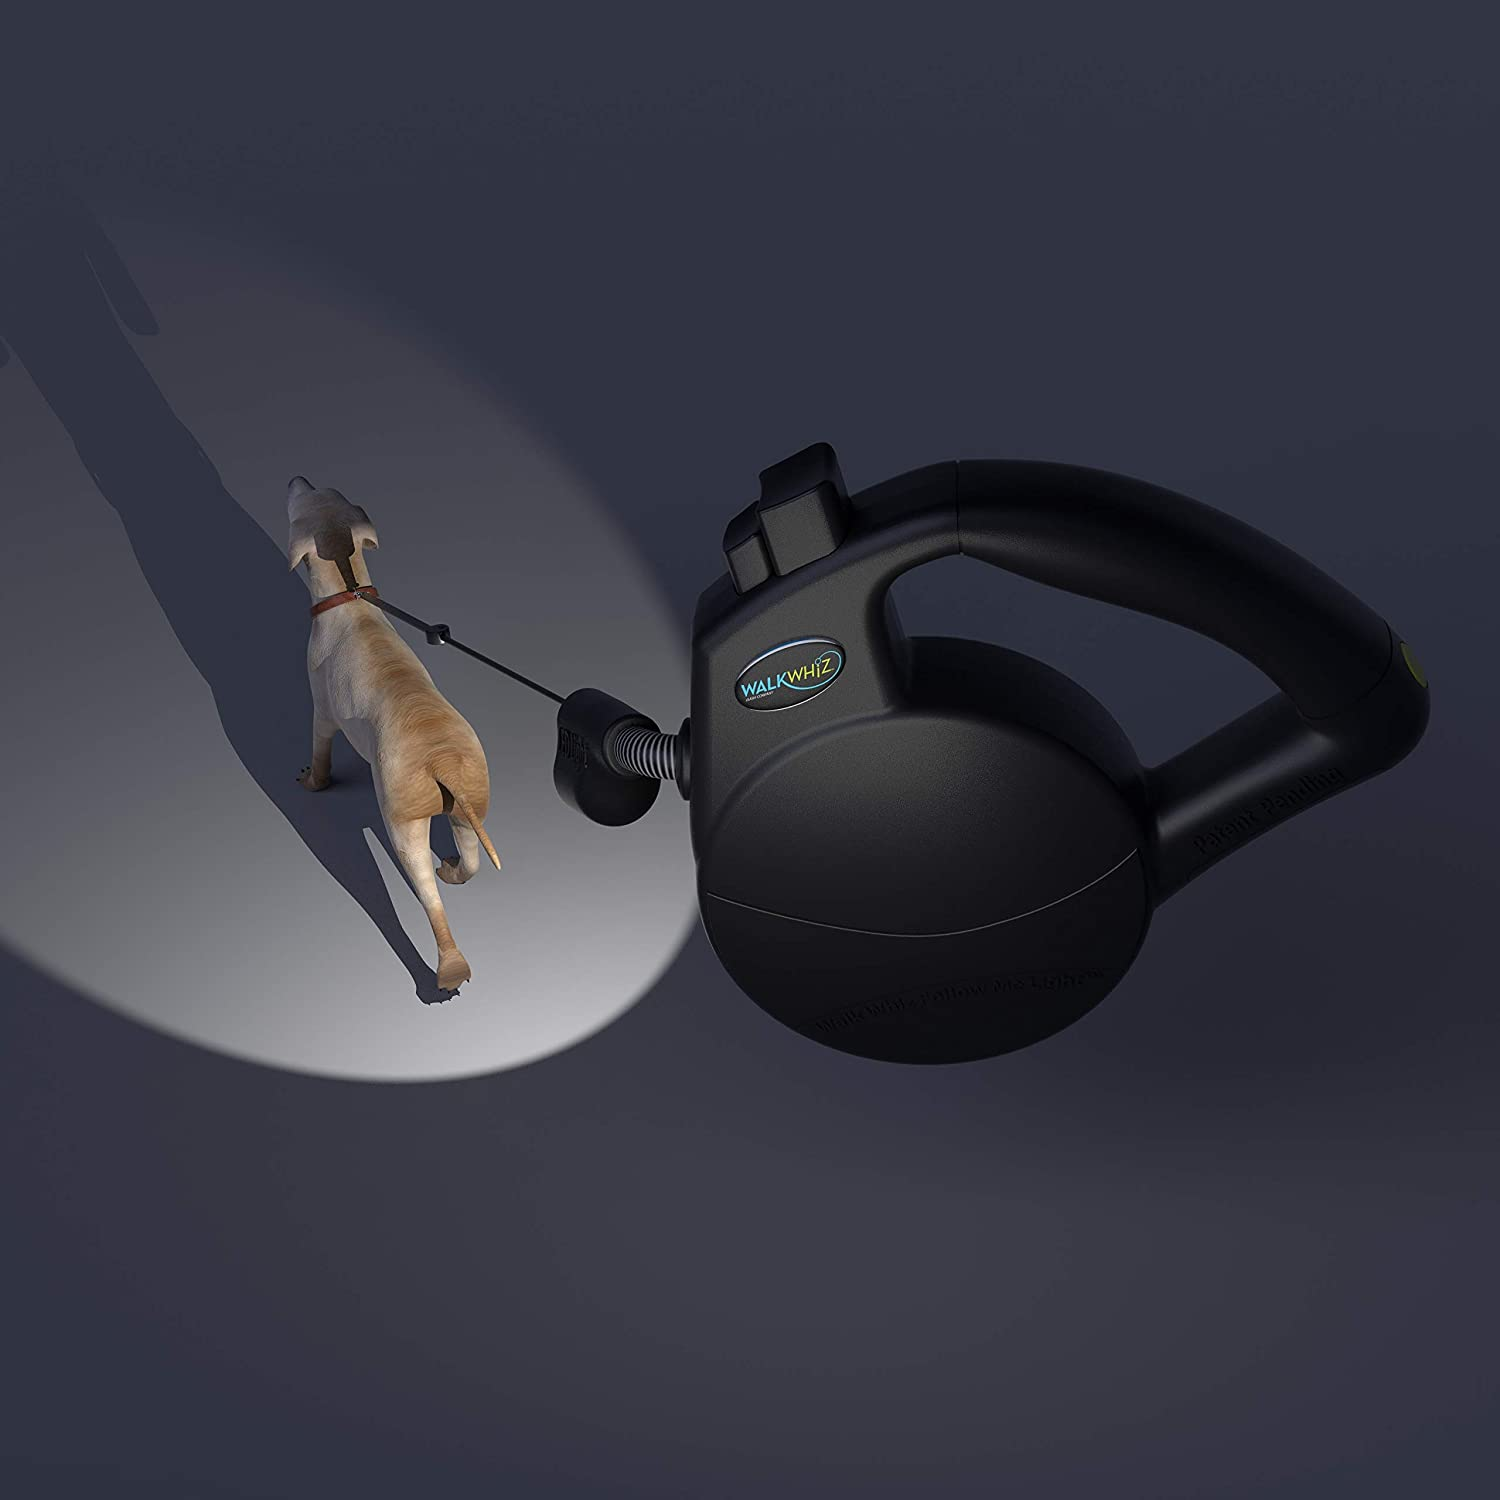 Retractable Leash for Dogs, with 360 Degree Automatic Light